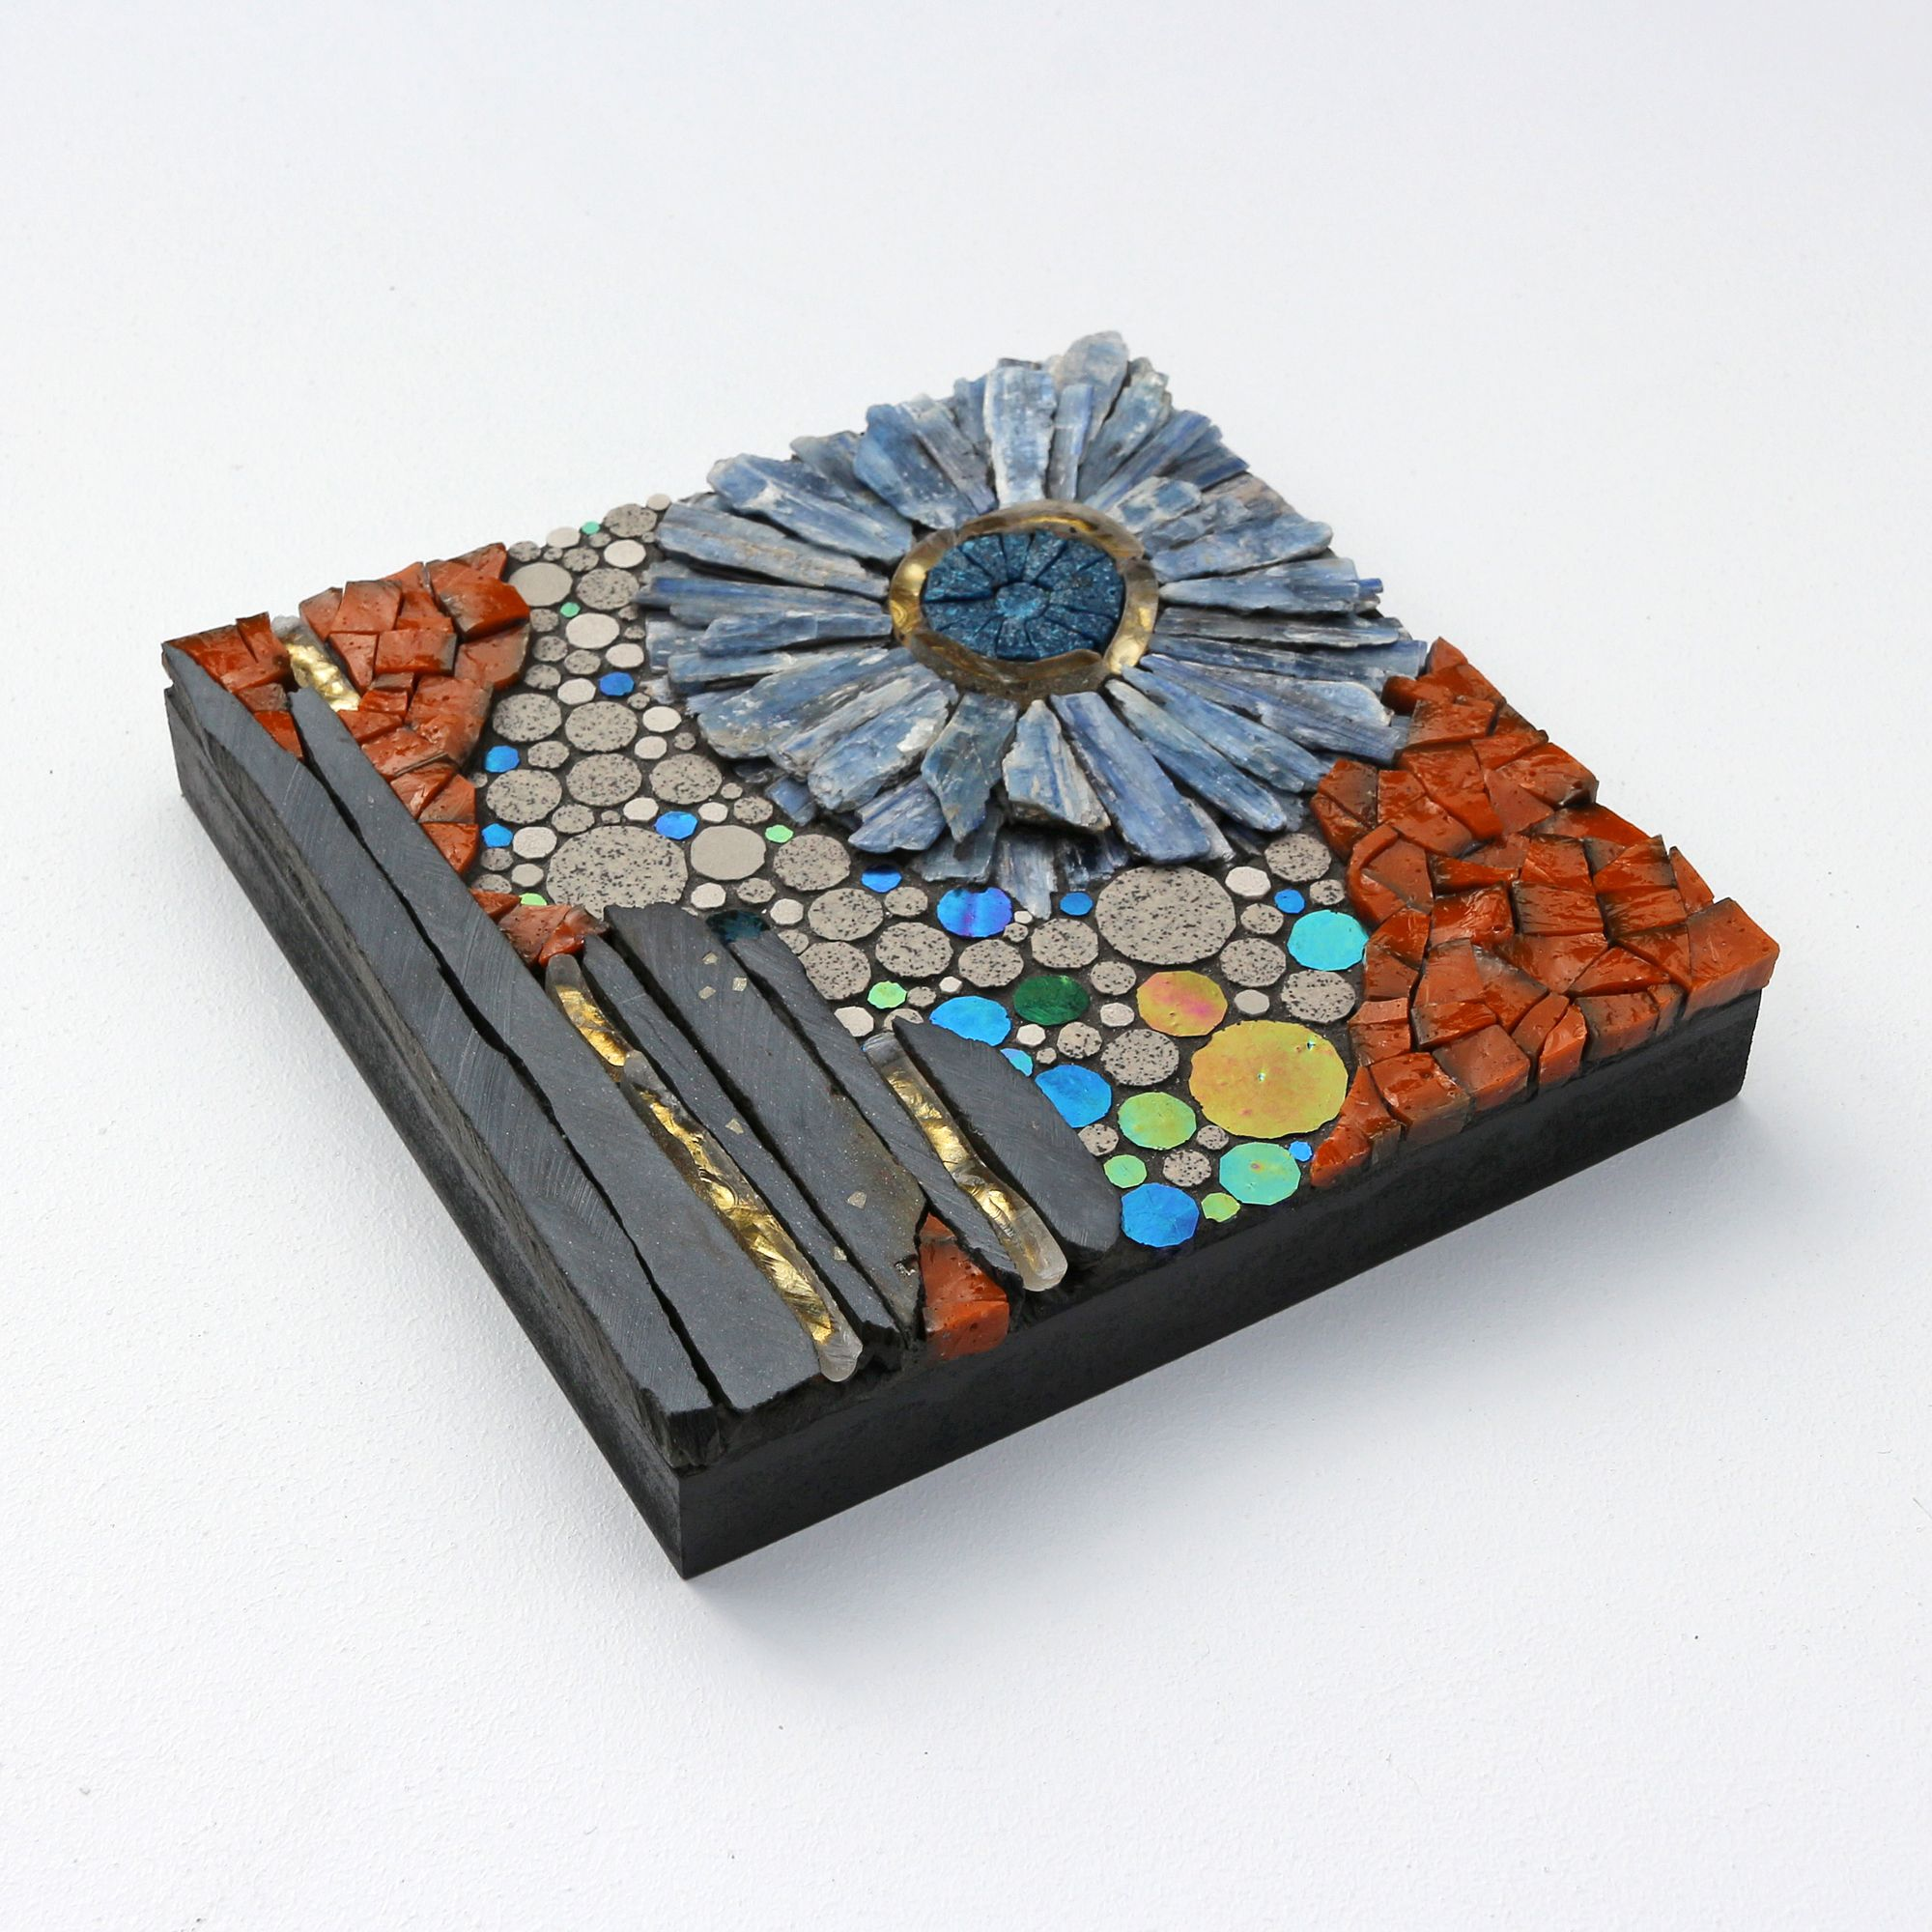 Mosaic glass tile for crafts - Line Mortensen Creates One Off Mosaic Work In A Mix Of Glass Tiles Italian